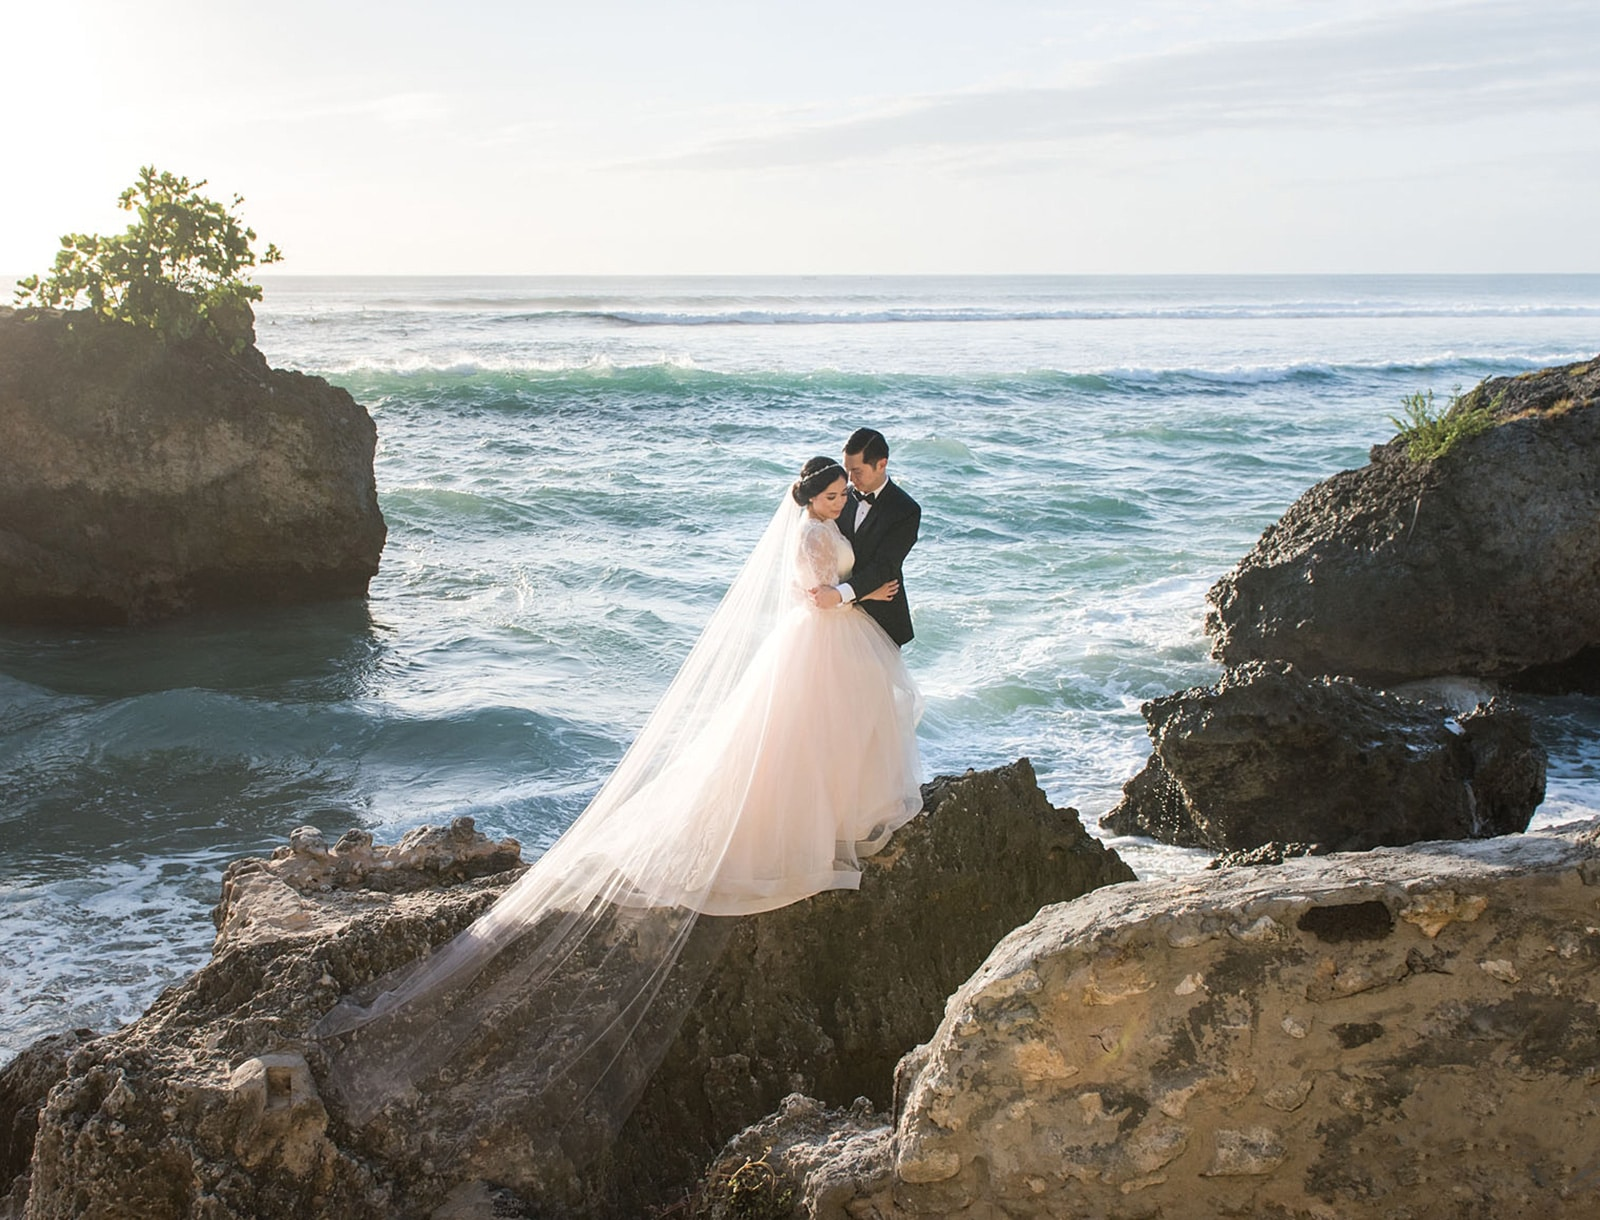 Our Wedding Day Photos in Bali: Samantha + Elliott